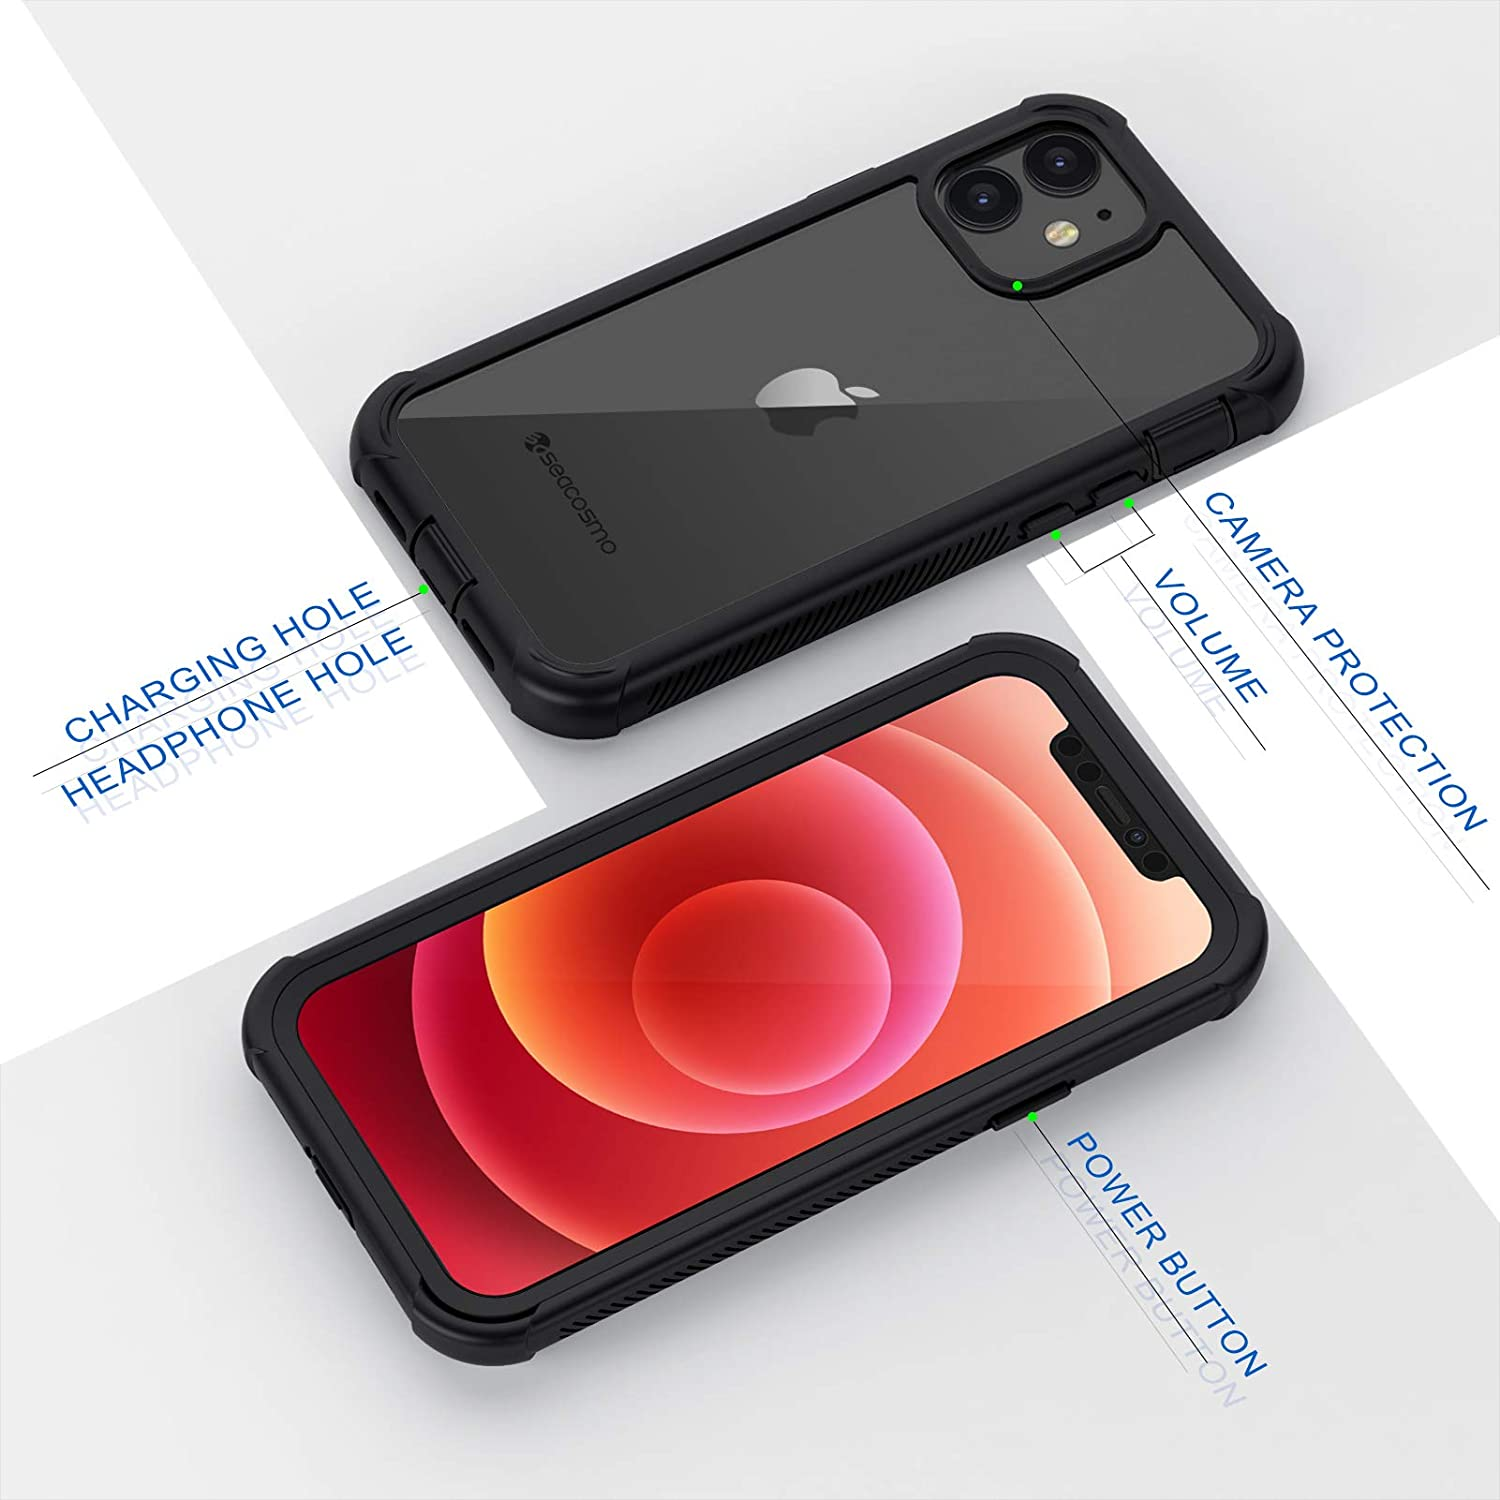 Full Body Protective Cover with Screen Protector Clear Shockproof Bumper Transparent 360/° Protection Case for iPhone 12//12 Pro 6.1 Inches iPhone 12 Pro Case seacosmo iPhone 12 Case Black